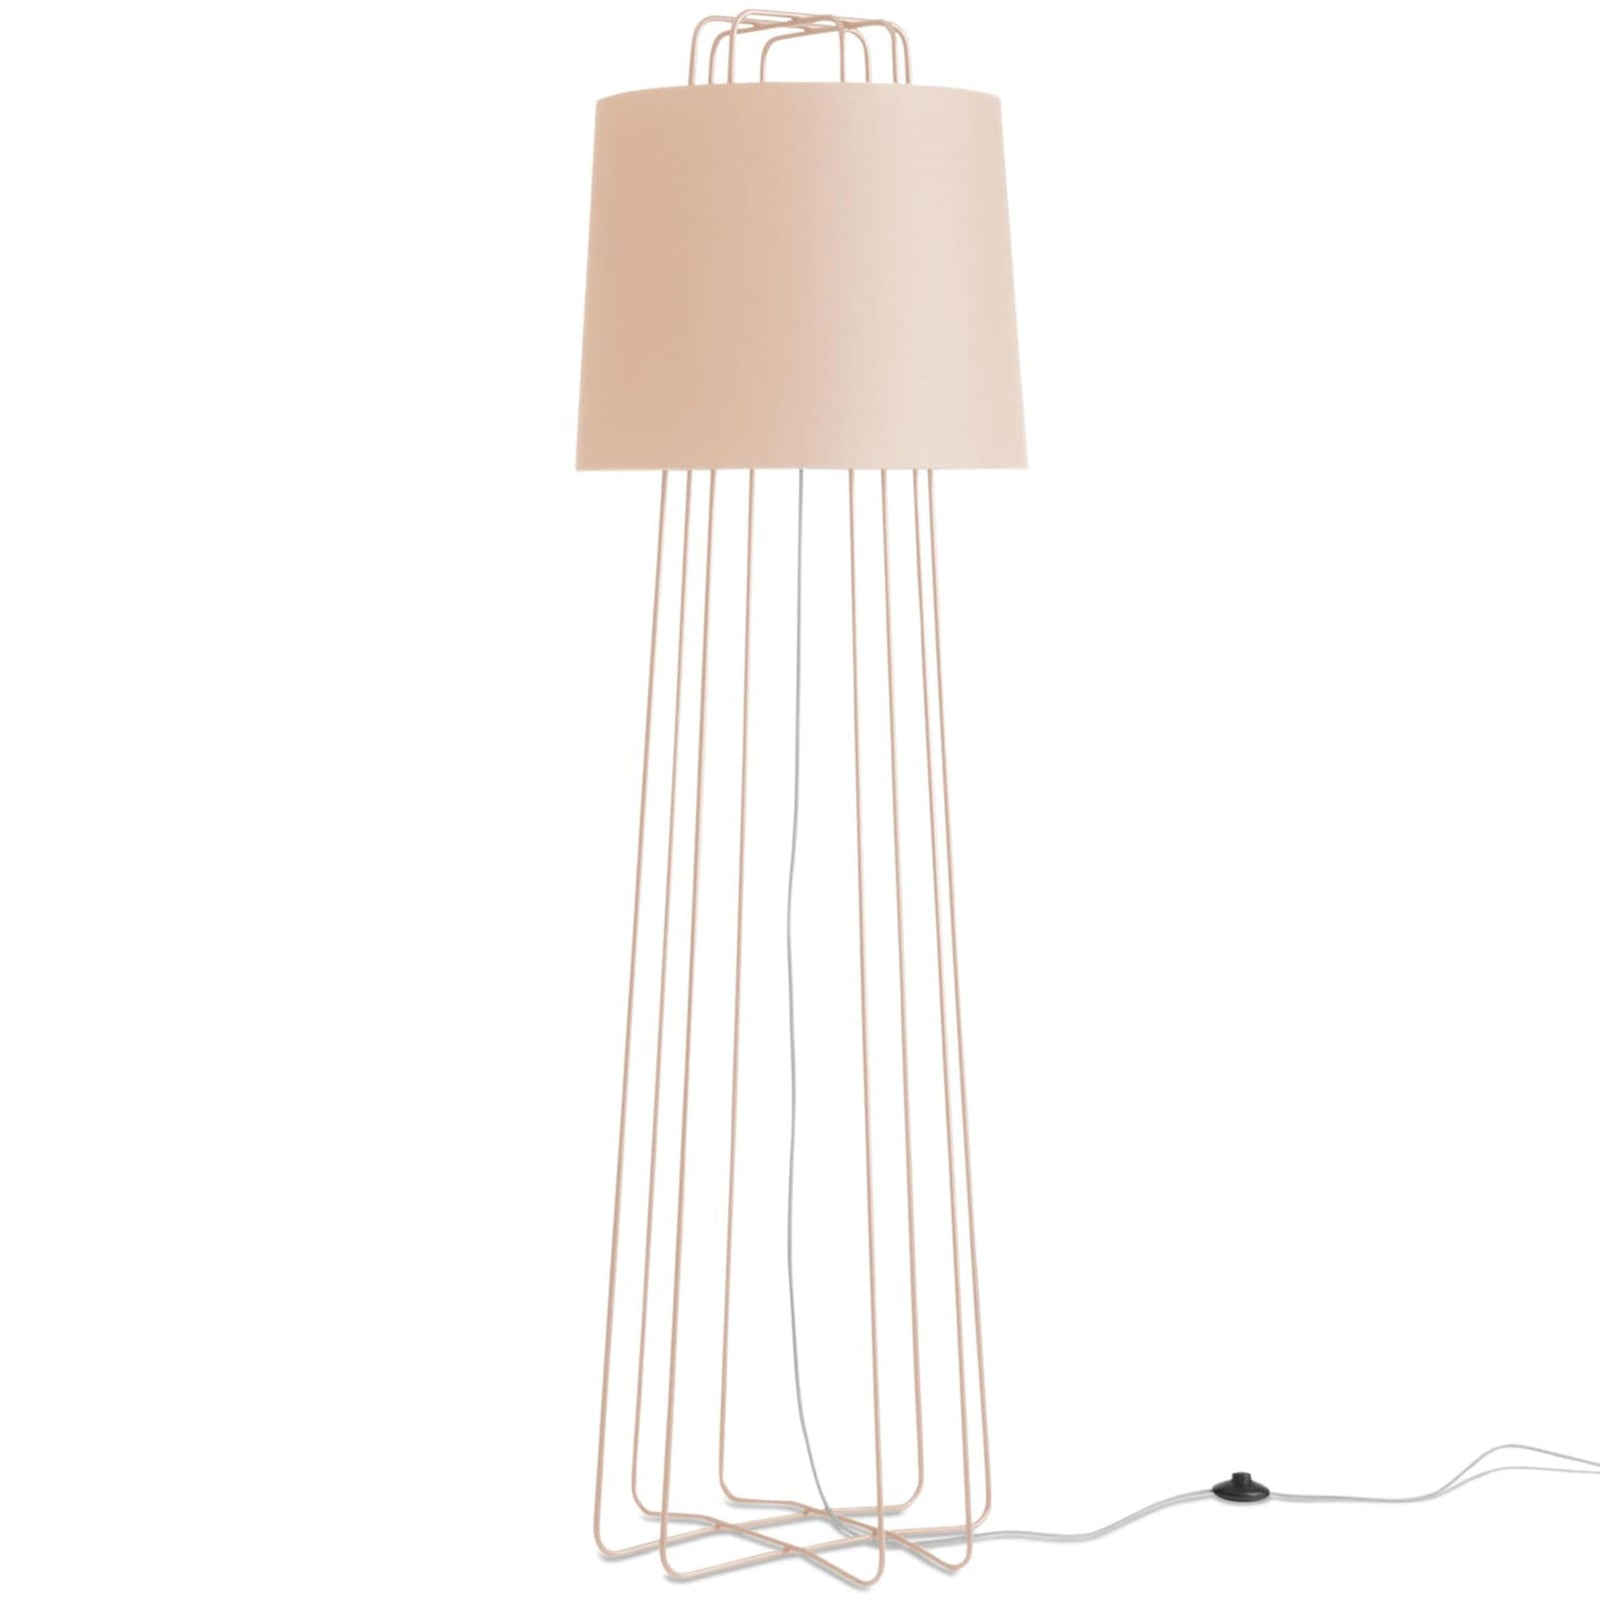 Blu Dot Lighting Blush Perimeter Floor Lamp